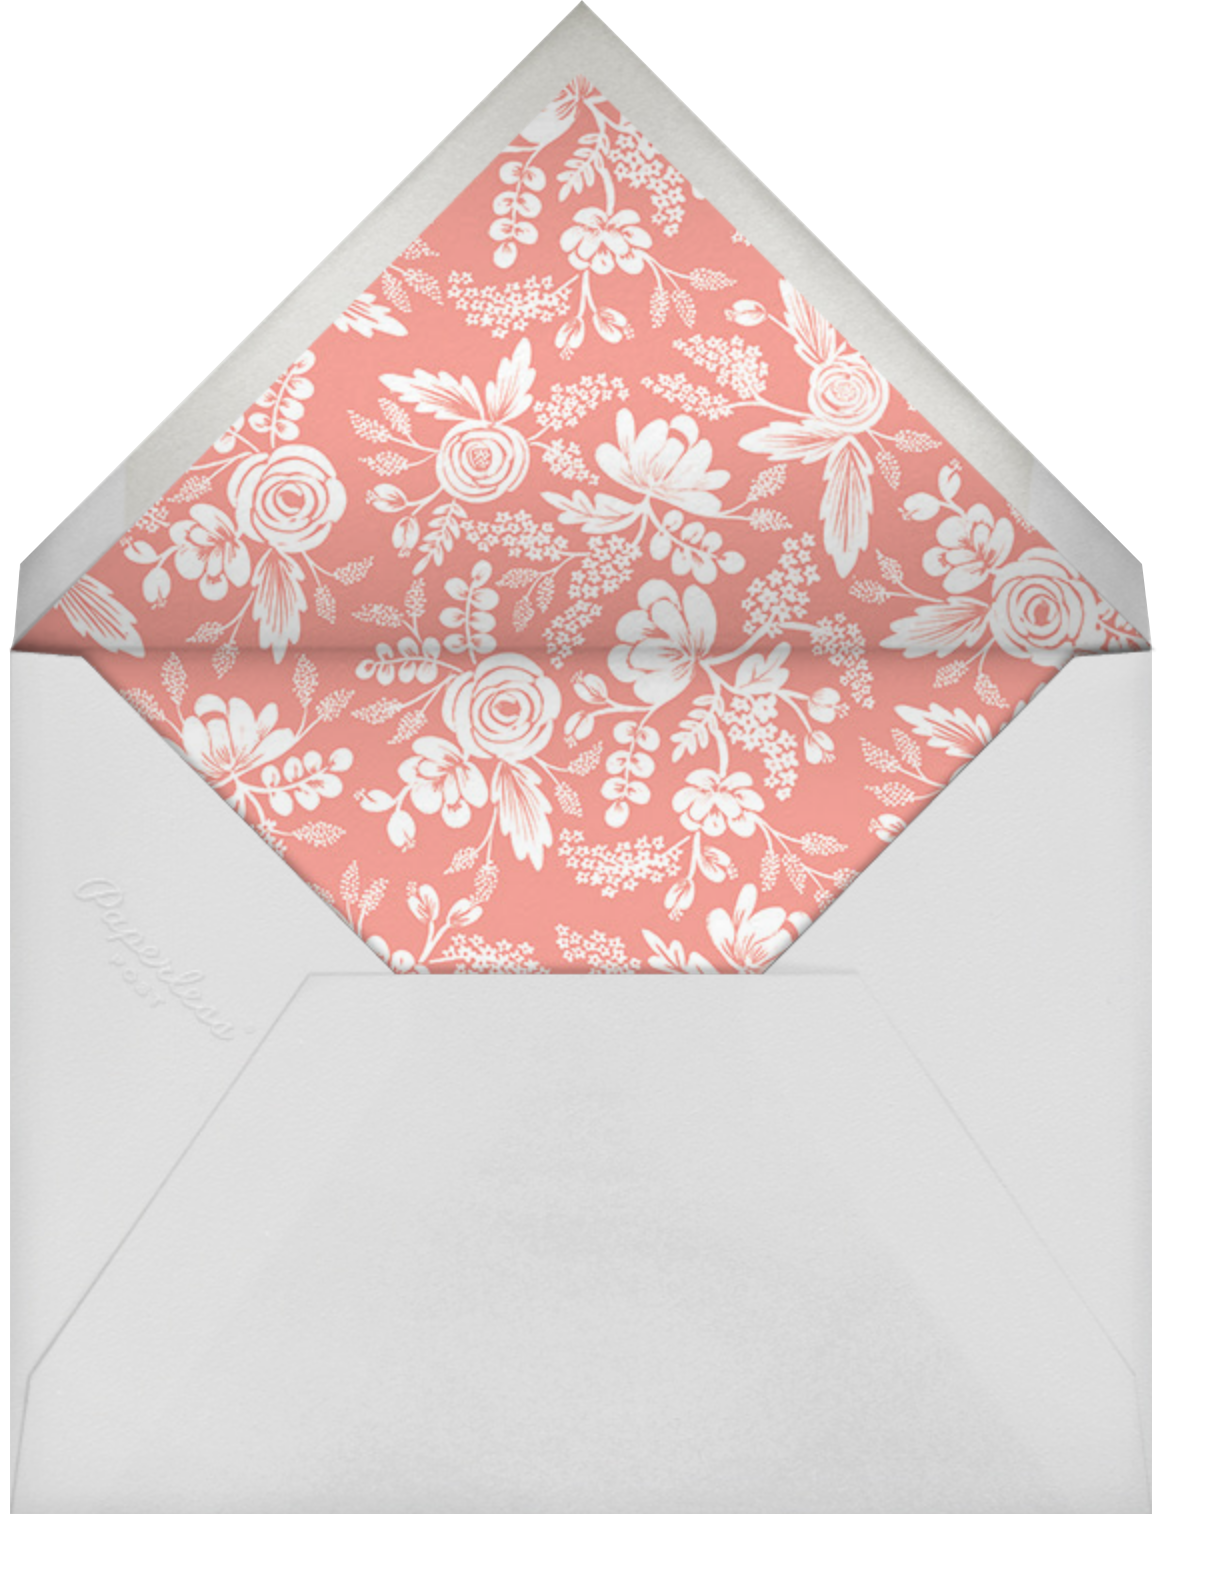 Heather and Lace (Photo Stationery) - Rose Gold/Pink - Rifle Paper Co. - Kids' stationery - envelope back